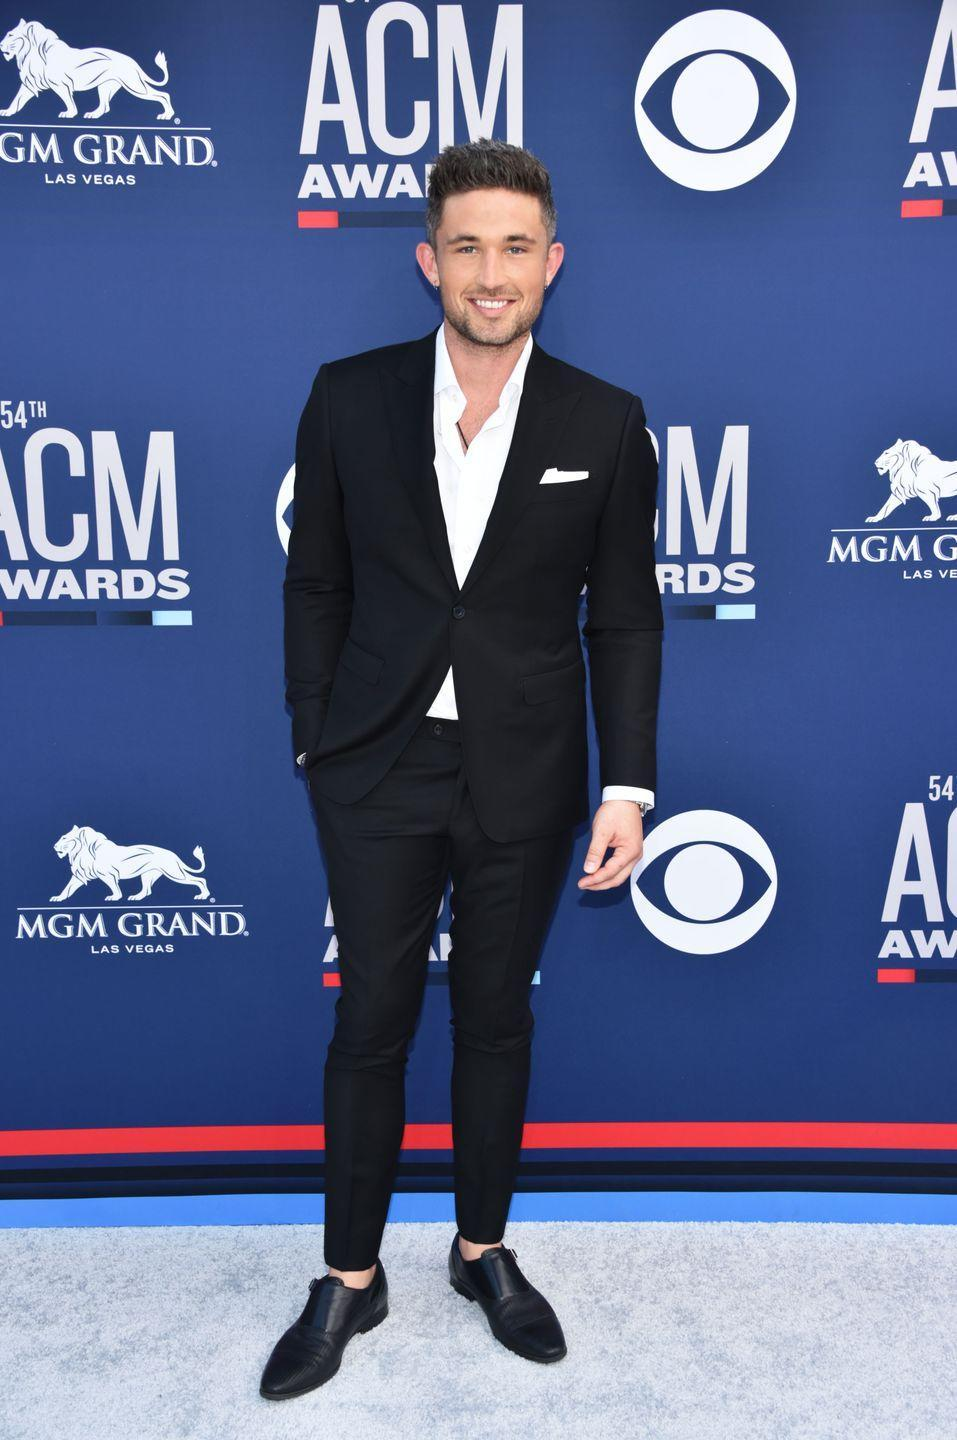 "<p>Not many people have heard of <em>The Next, </em>since the CW reality show only aired for one season in 2012. But that was enough for Michael Ray, the winner, to make his debut. The country music star has released two albums with his label, Warner Music Nashville. The single ""Kiss You in the Morning"" went to No. 1 on the charts.</p>"